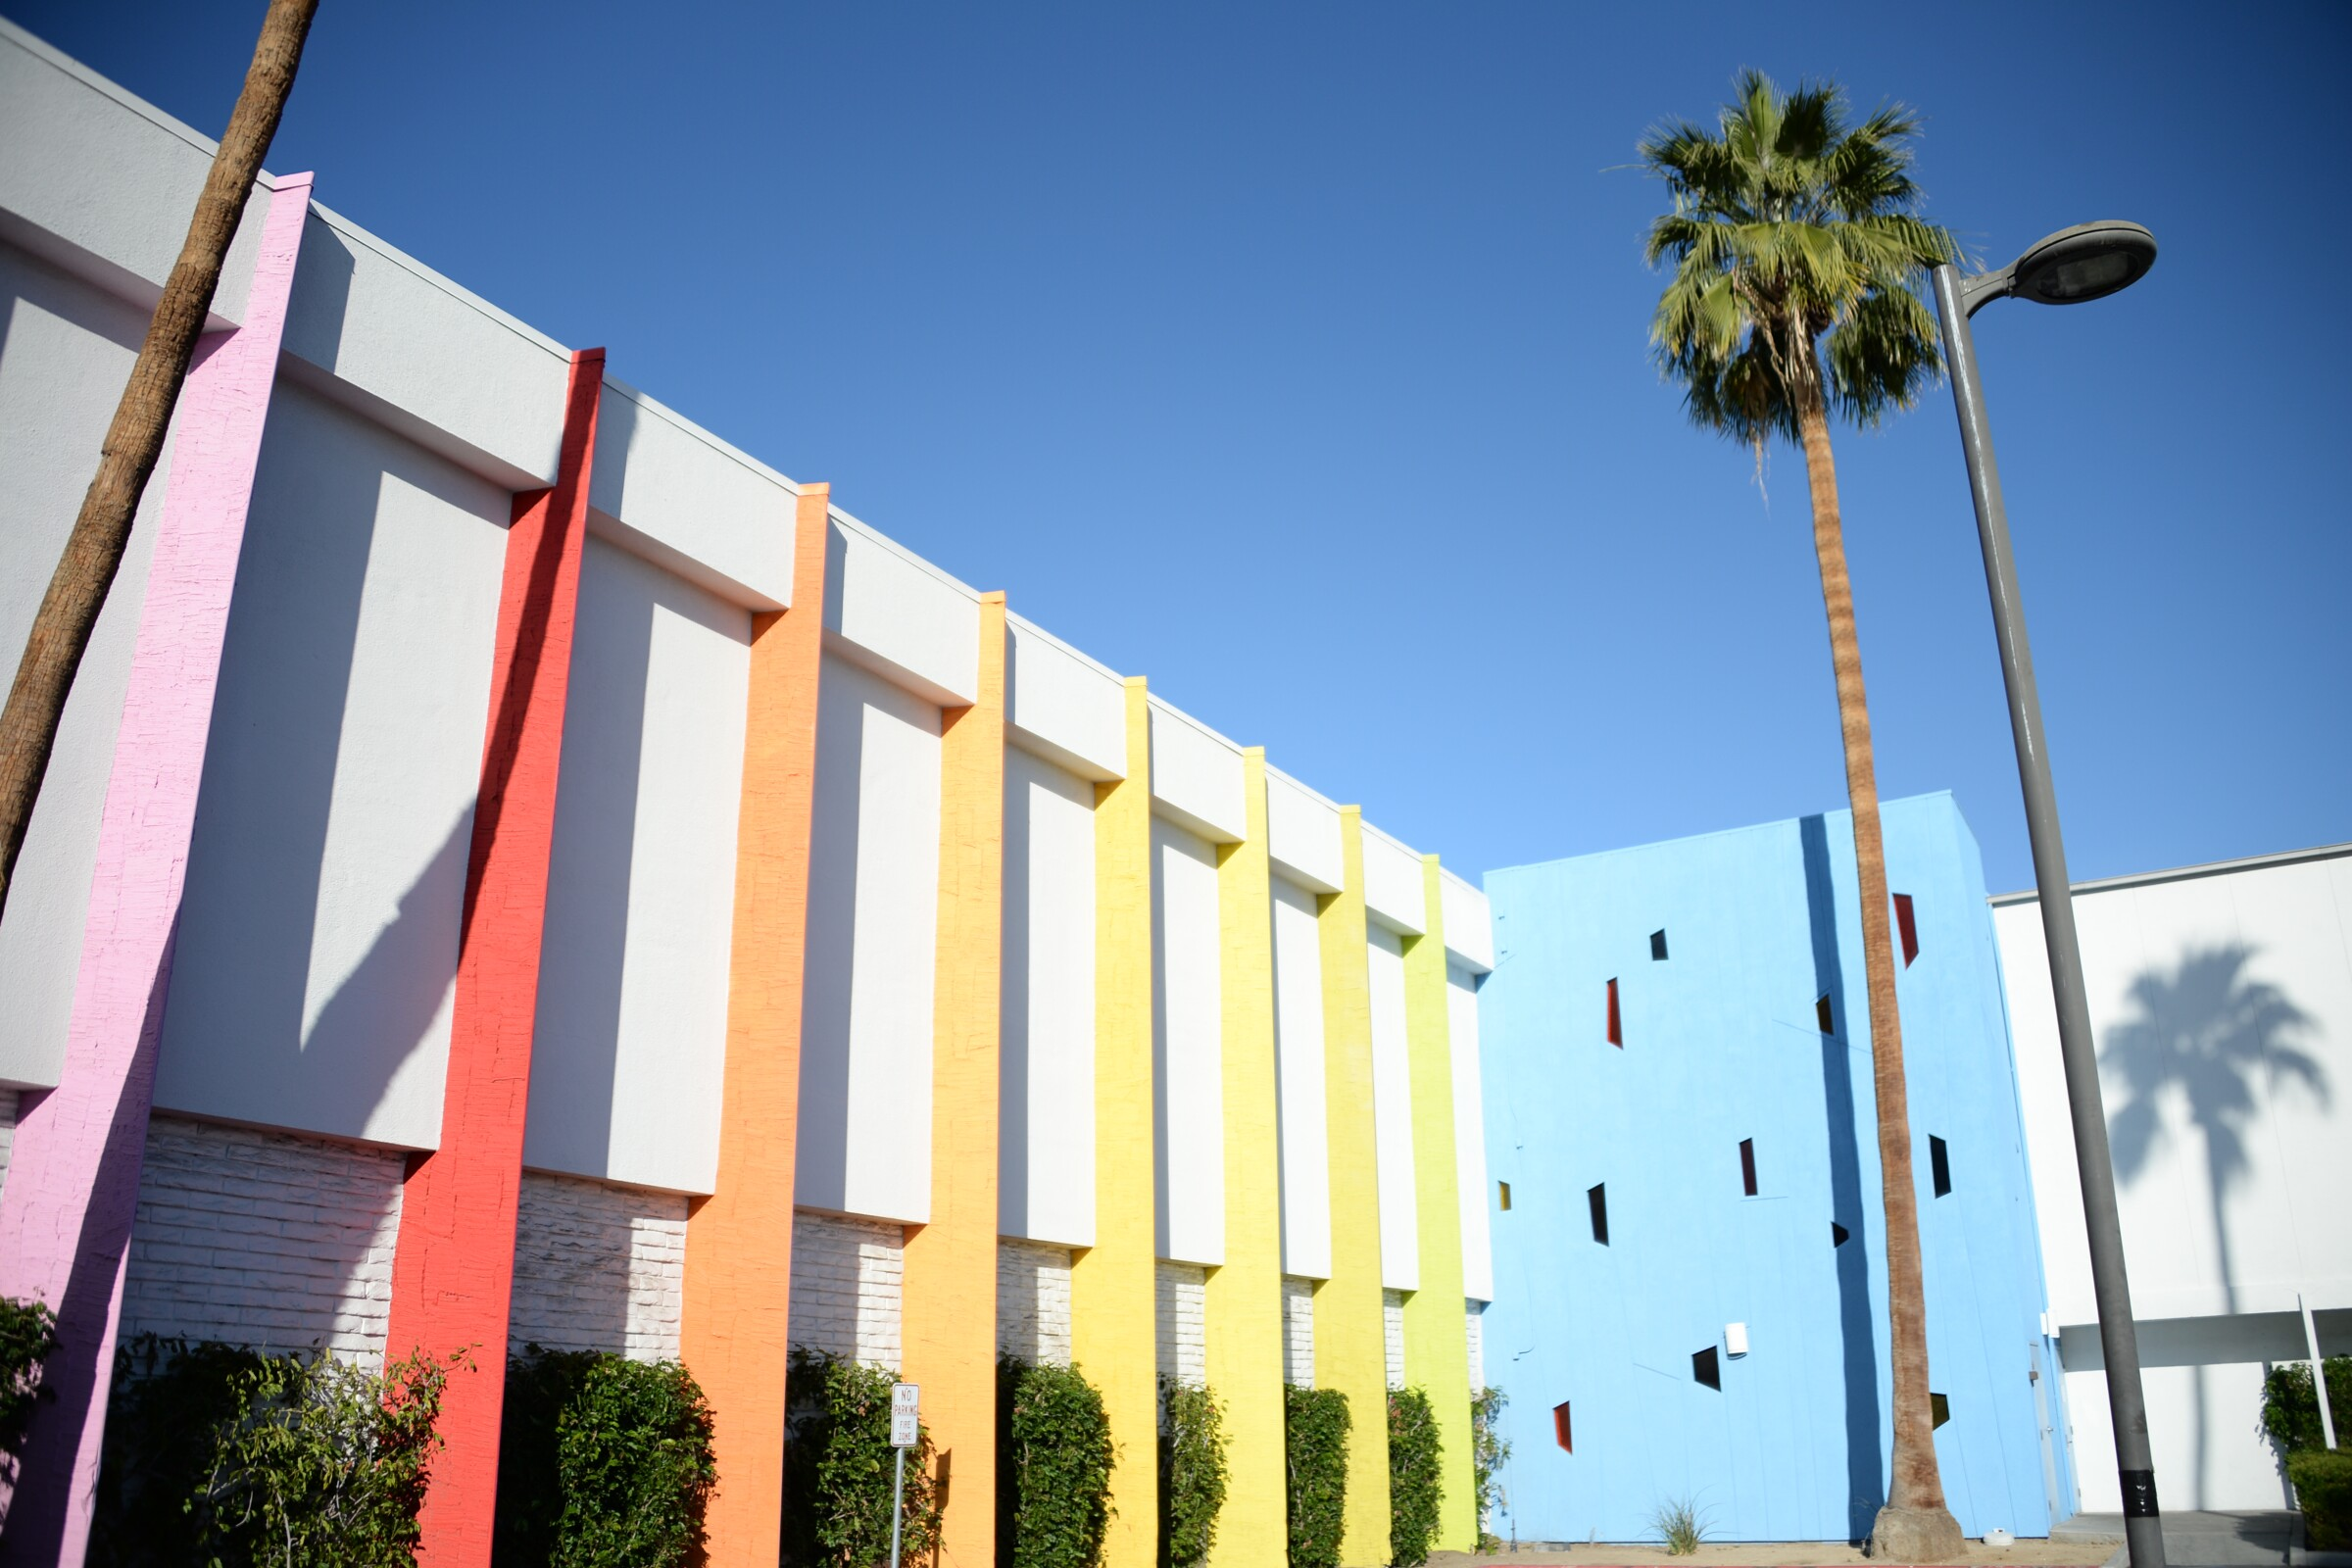 An exterior shot of The Saguaro Hotel, one of the (aesthetic) pit stops on my road trip to Indio.